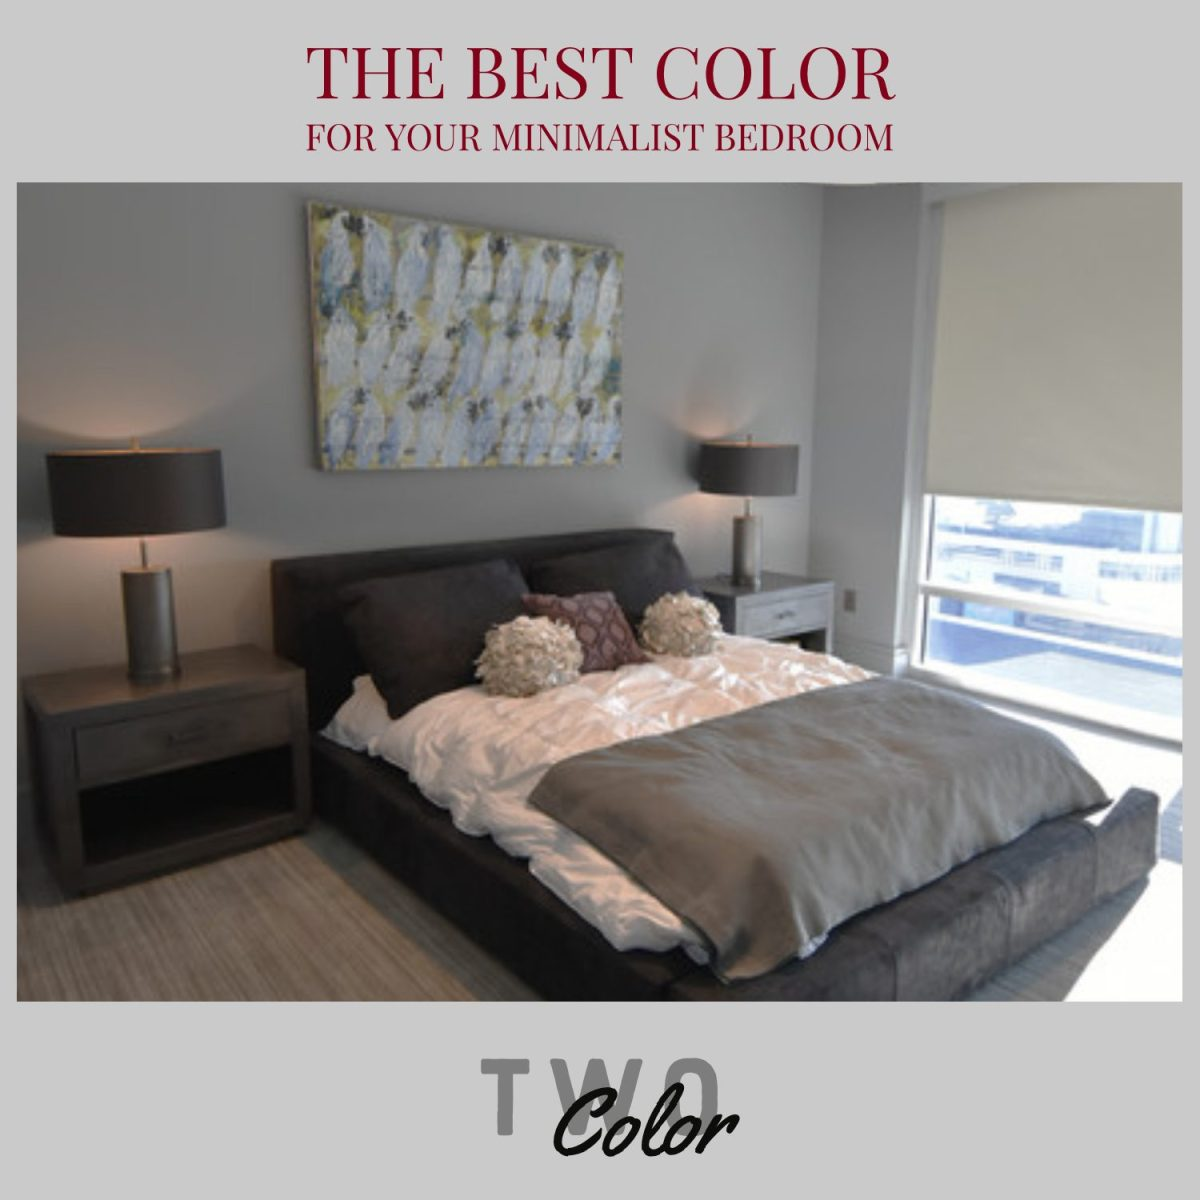 THe best color for your minimalist bedroom